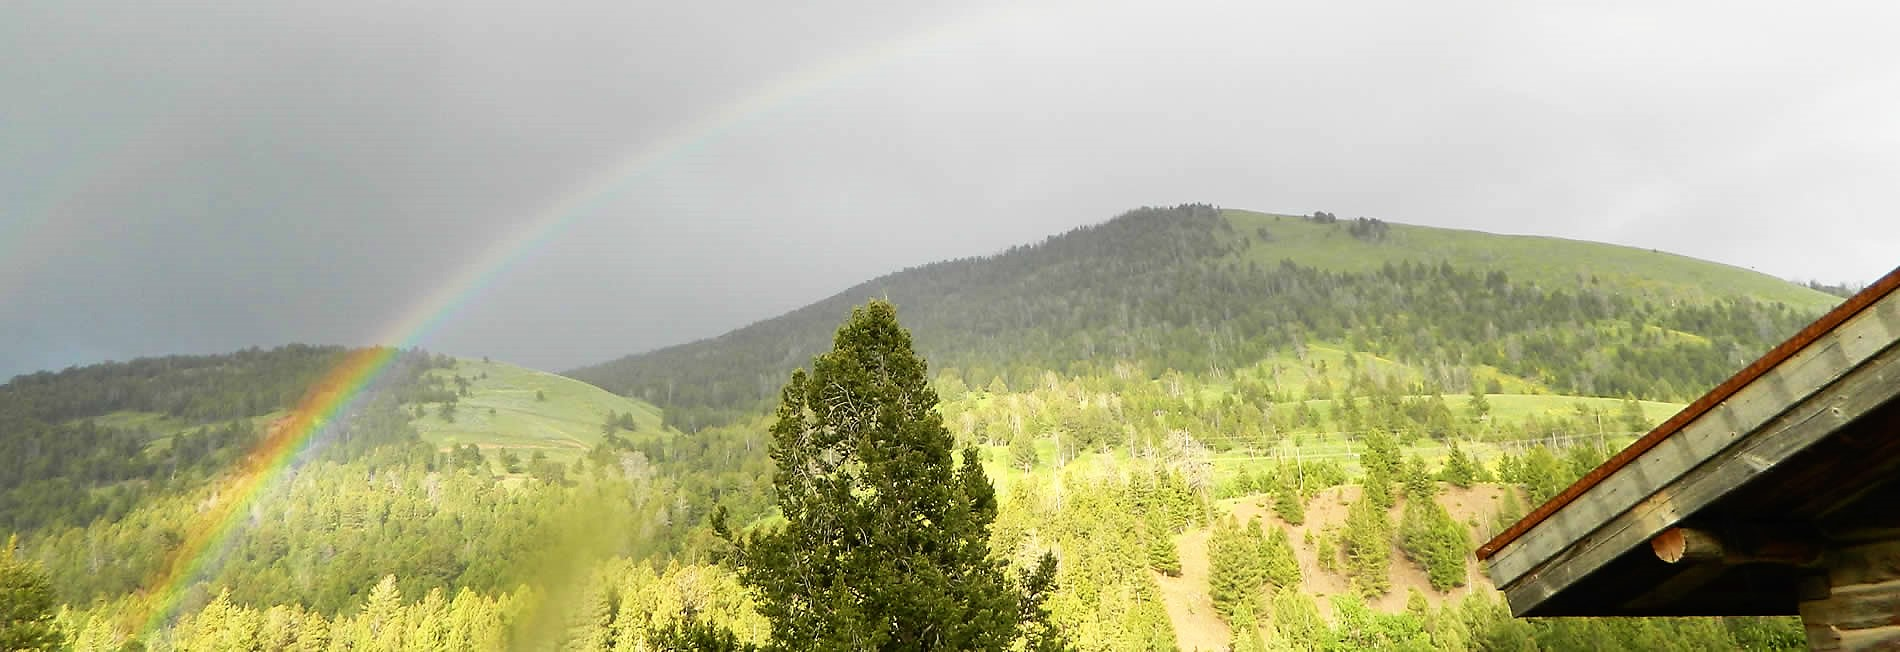 yellowstone national park forest scene with rainbow